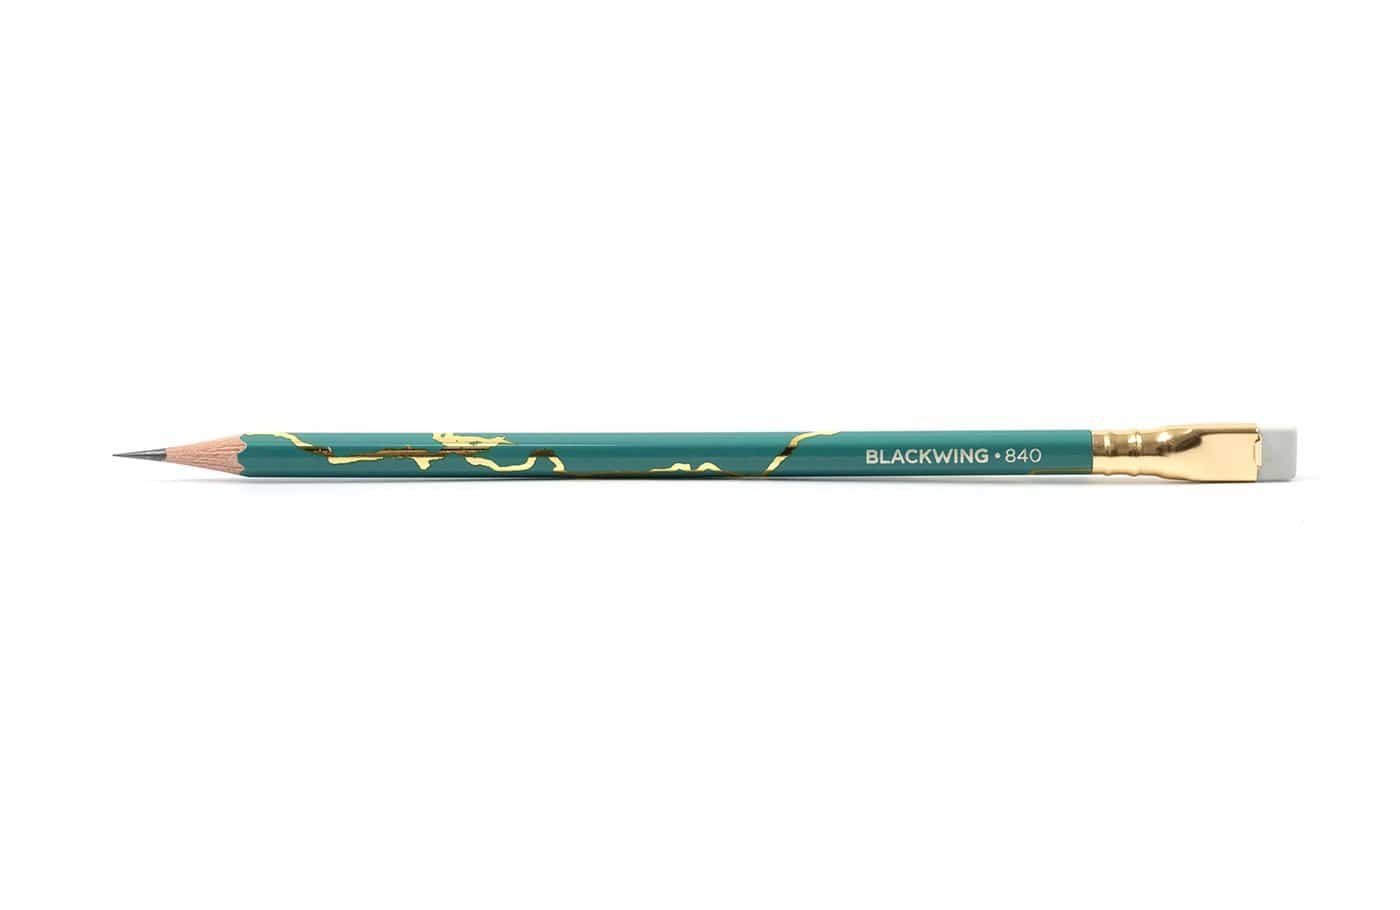 Blackwing Pencil Volume 840 - The Surfing Pencil